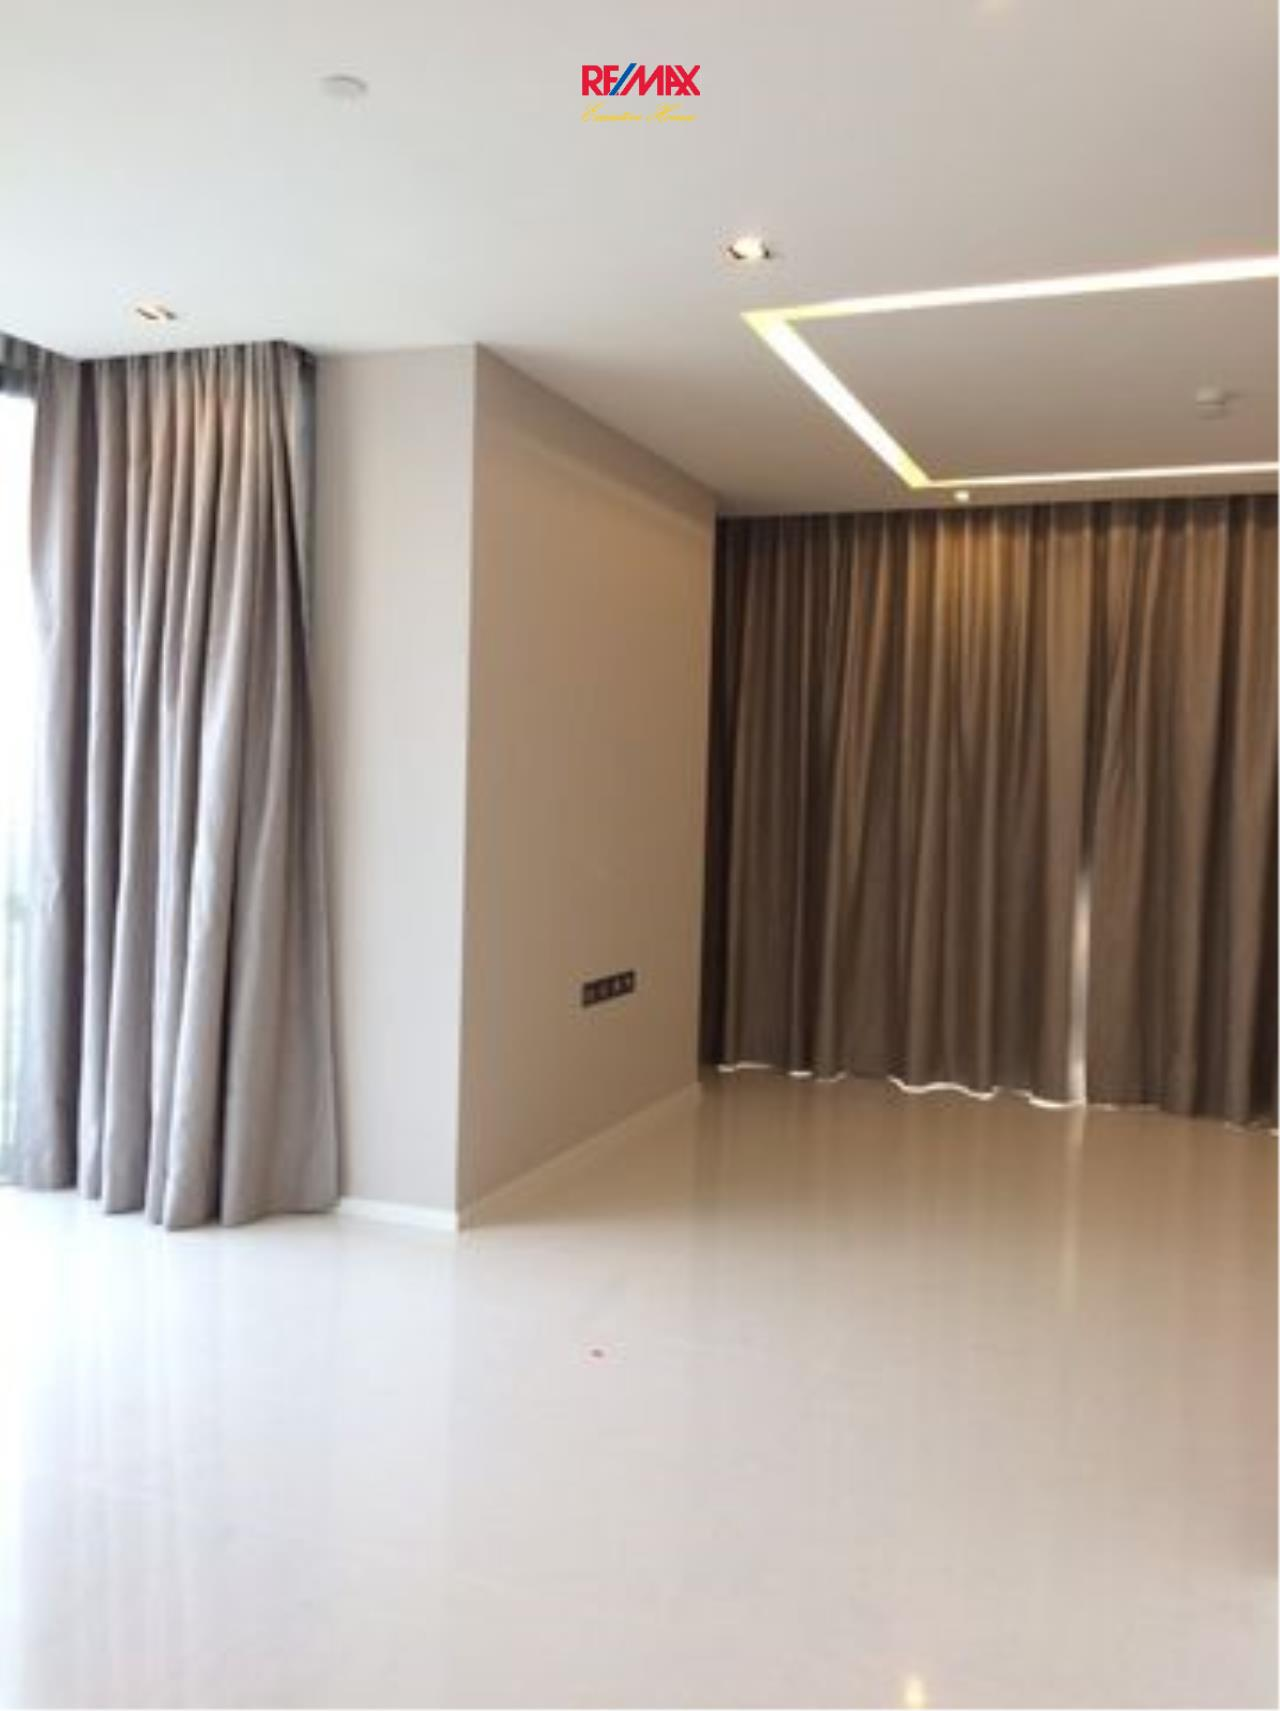 RE/MAX Executive Homes Agency's Spacious 2 Bedroom for Sale The Bangkok Sathorn 3